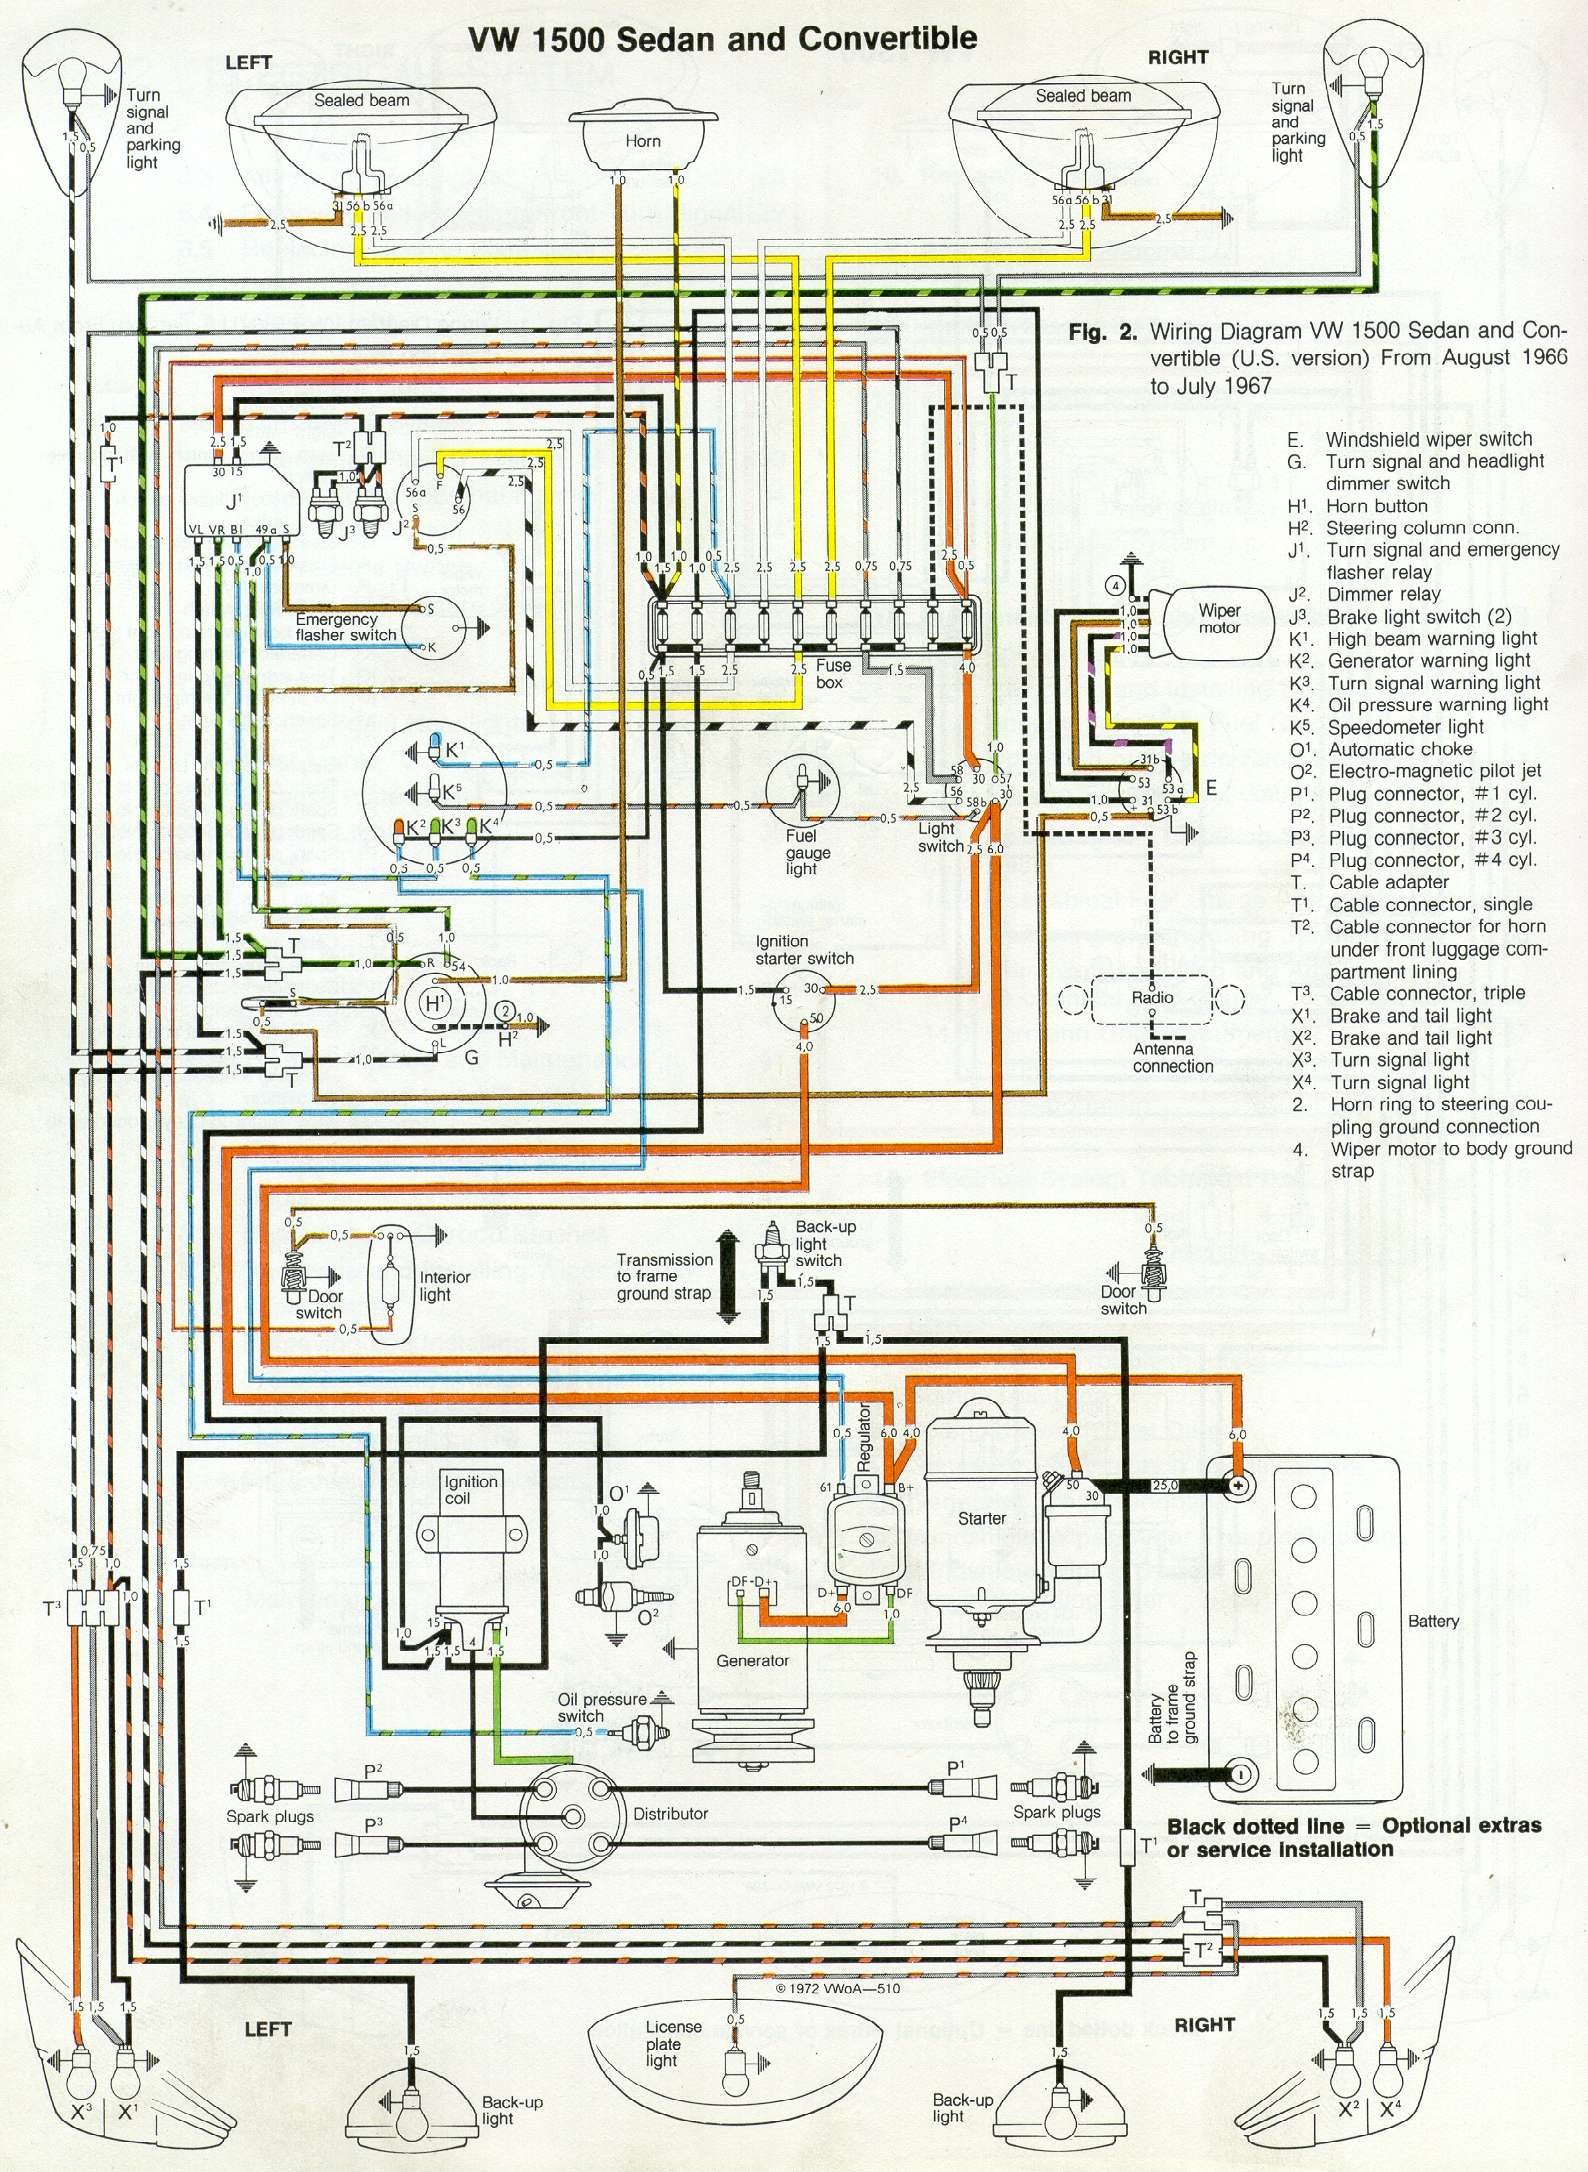 VW bug_1967 other diagrams 1973 vw beetle wiring diagram at n-0.co